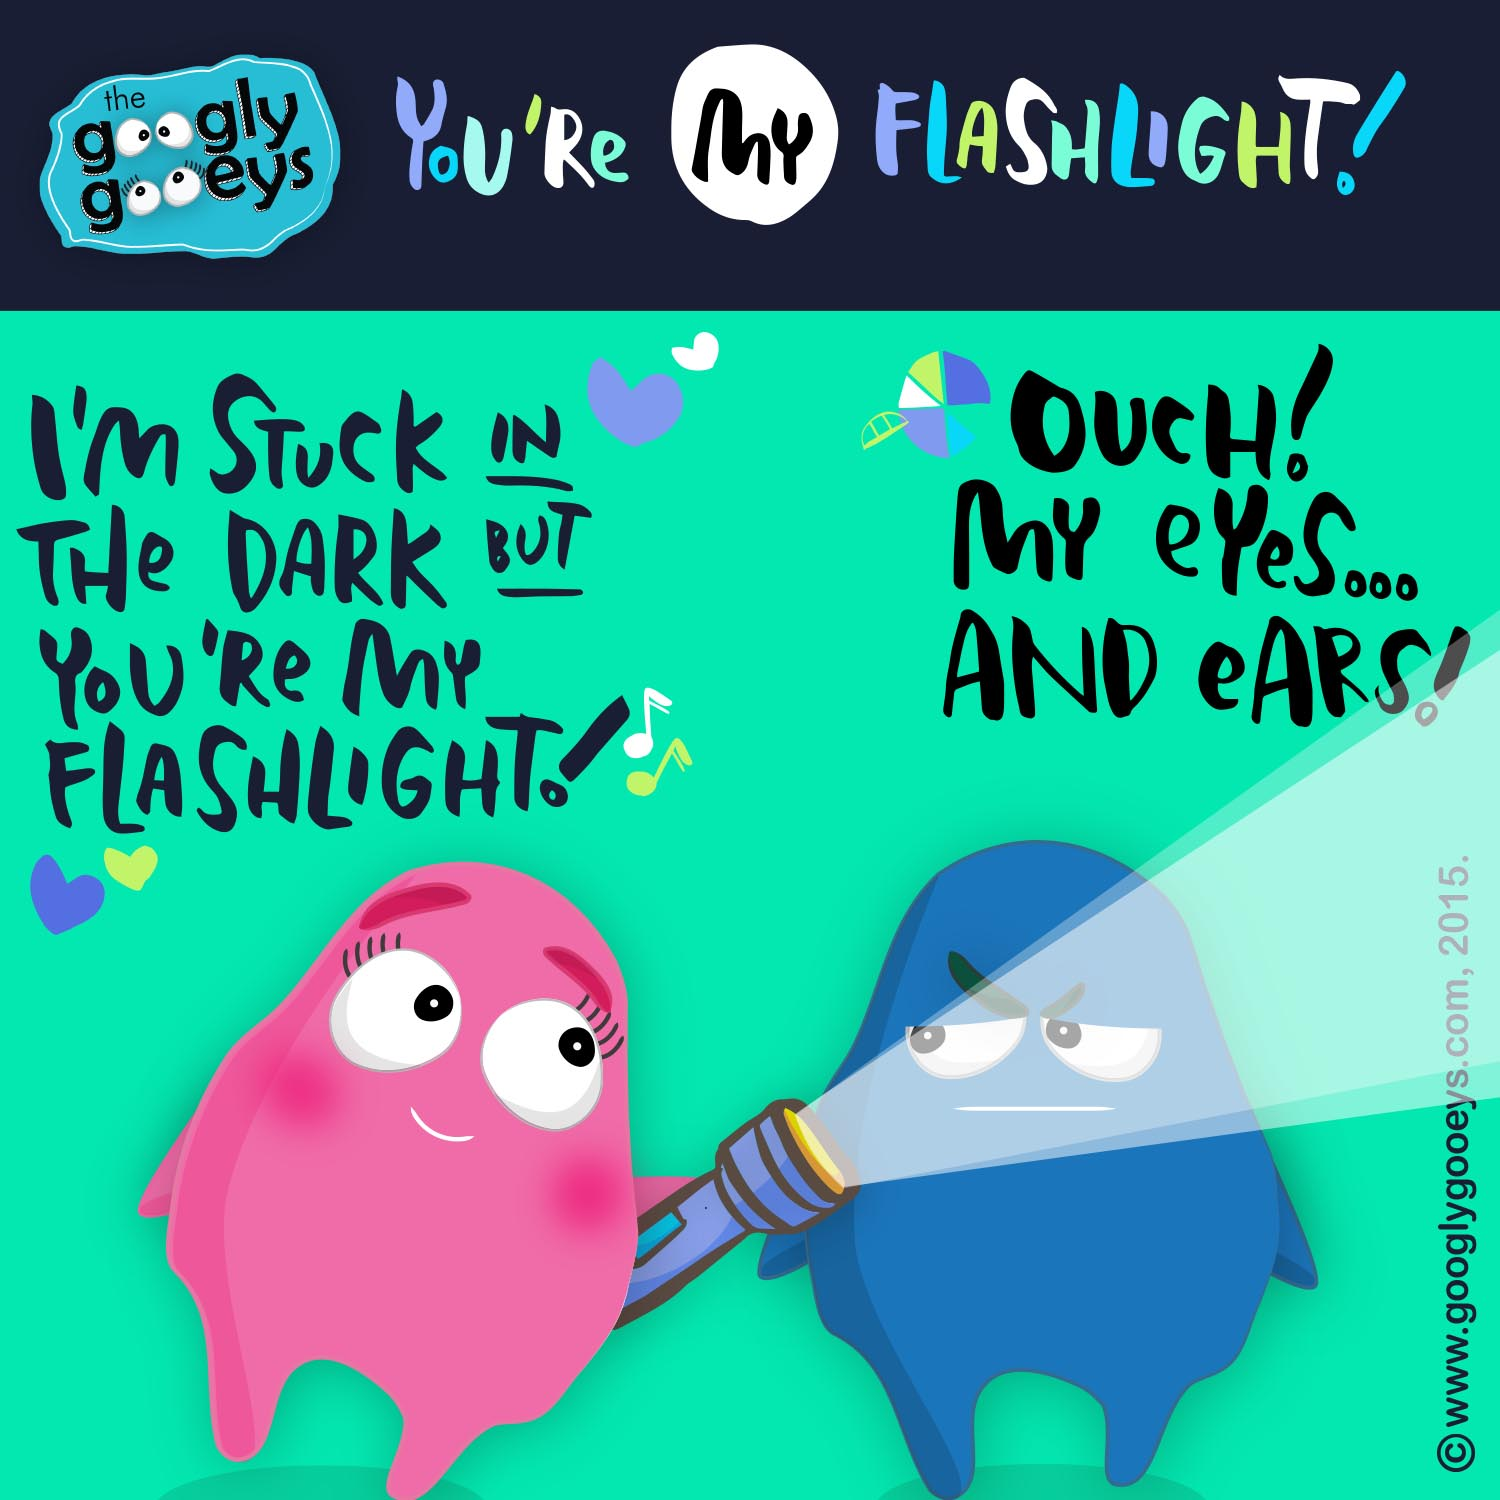 You're My Flashlight!